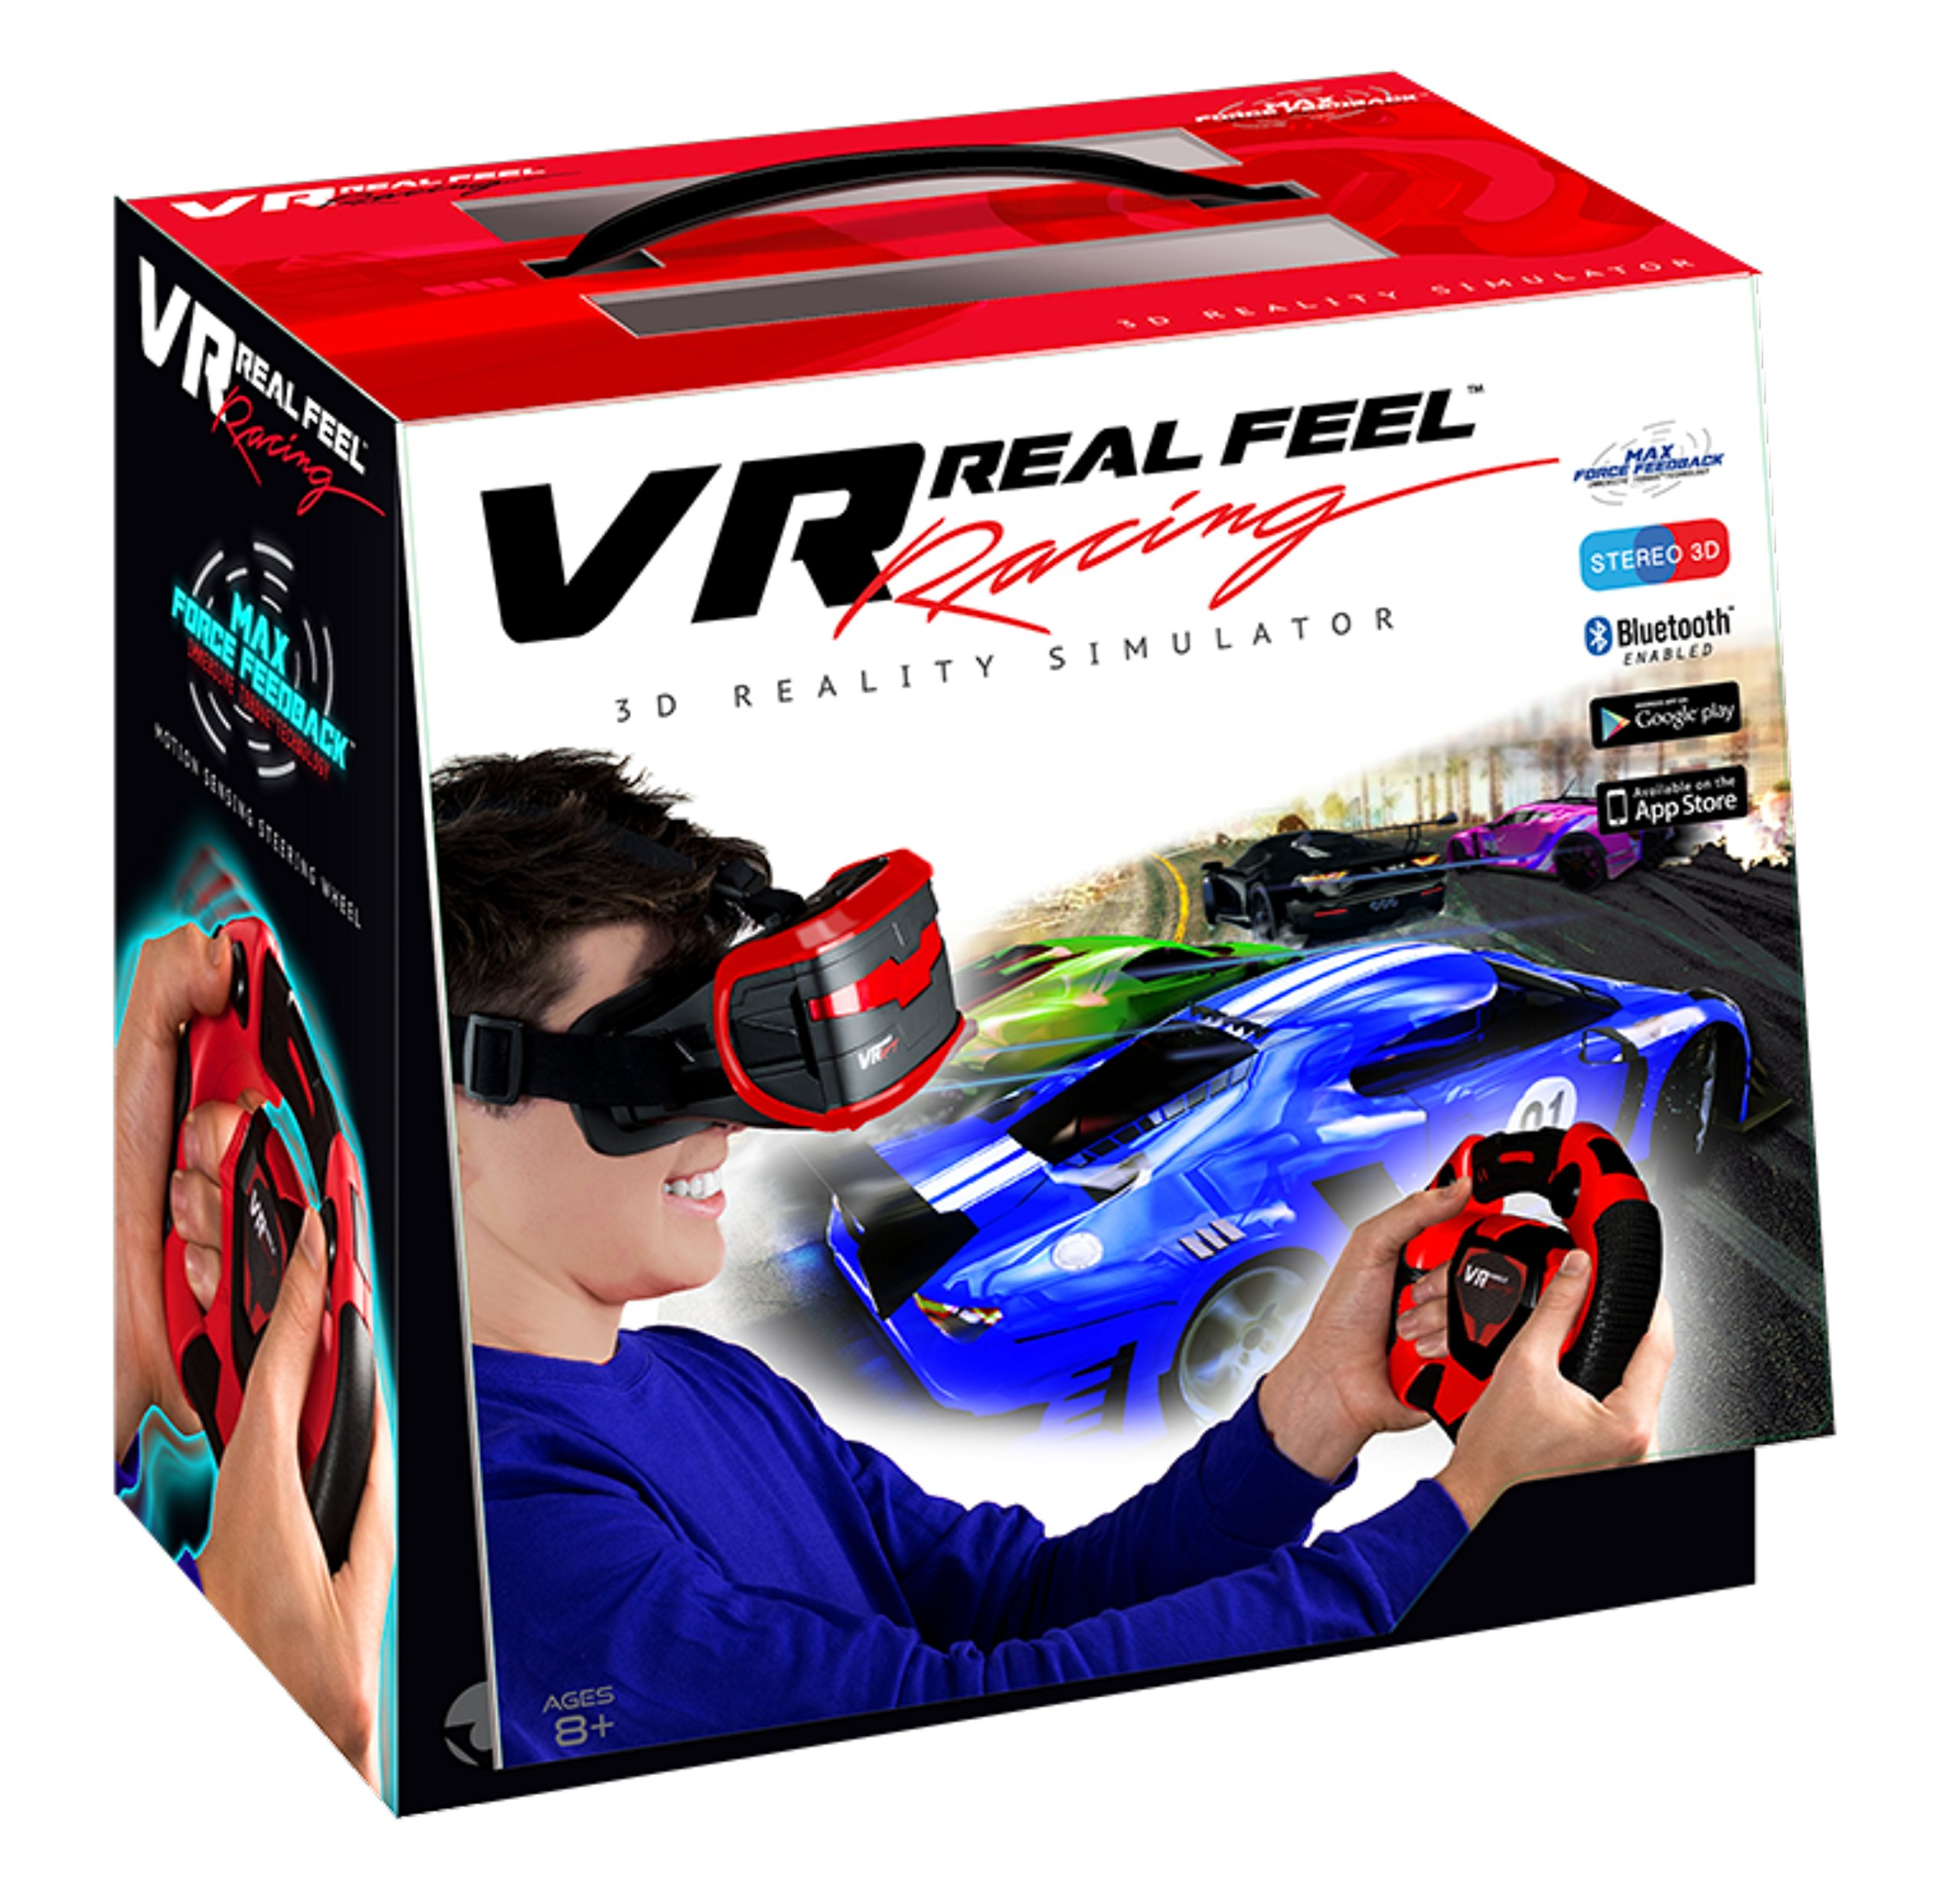 VR Real Feel Virtual Reality Car Racing Gaming System with Bluetooth Steering Wheel and Headset Goggles Viewer Glasses for iOS iPhone and Android by VR Entertainment (Image #2)